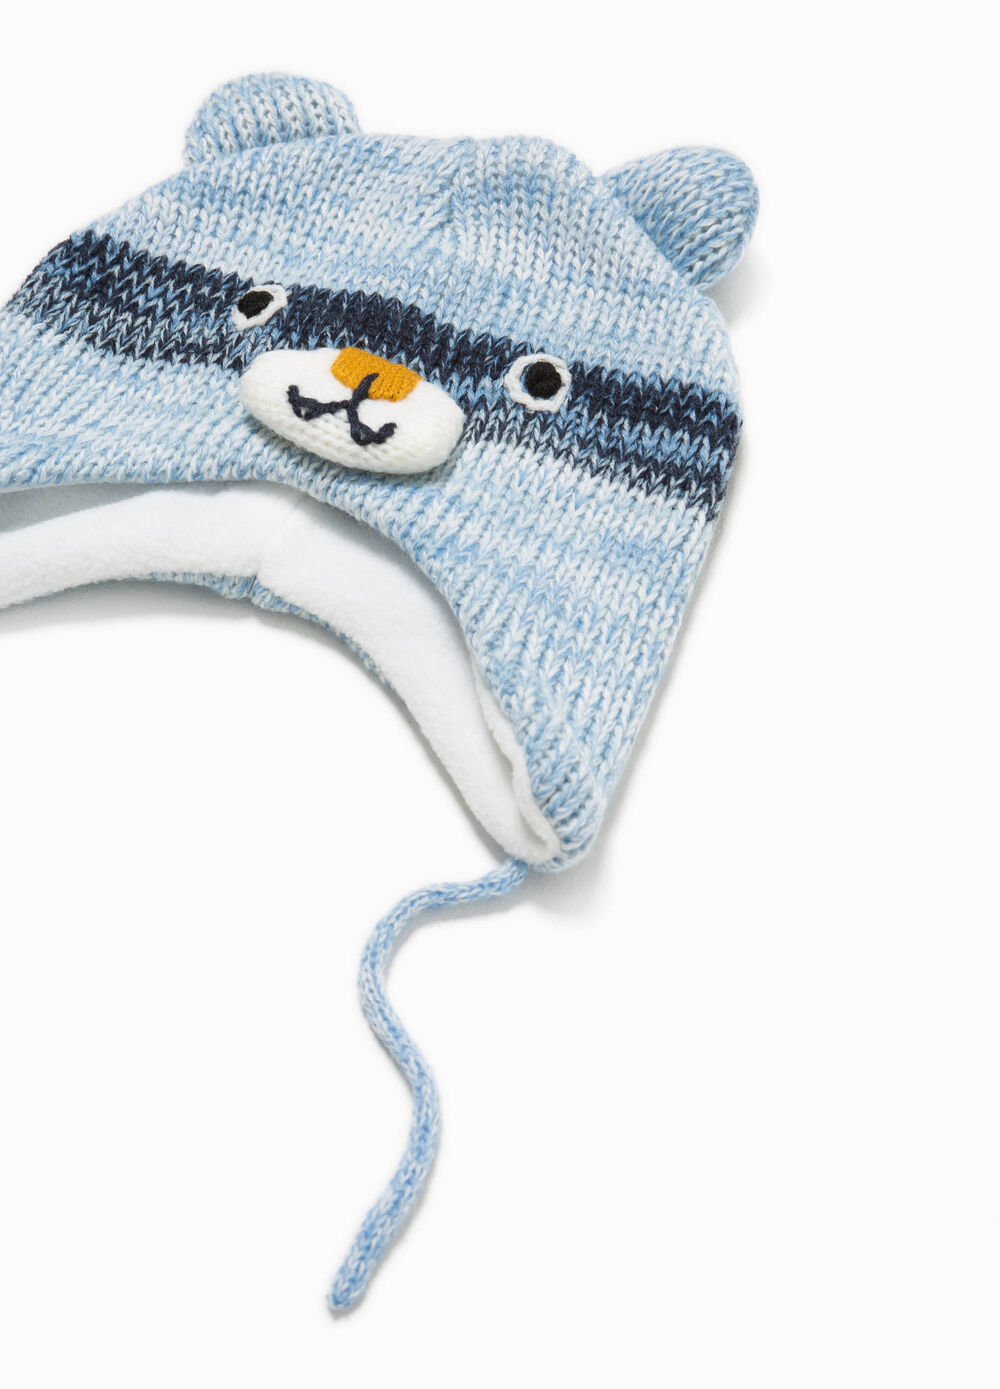 Knitted beanie cap with ear flaps